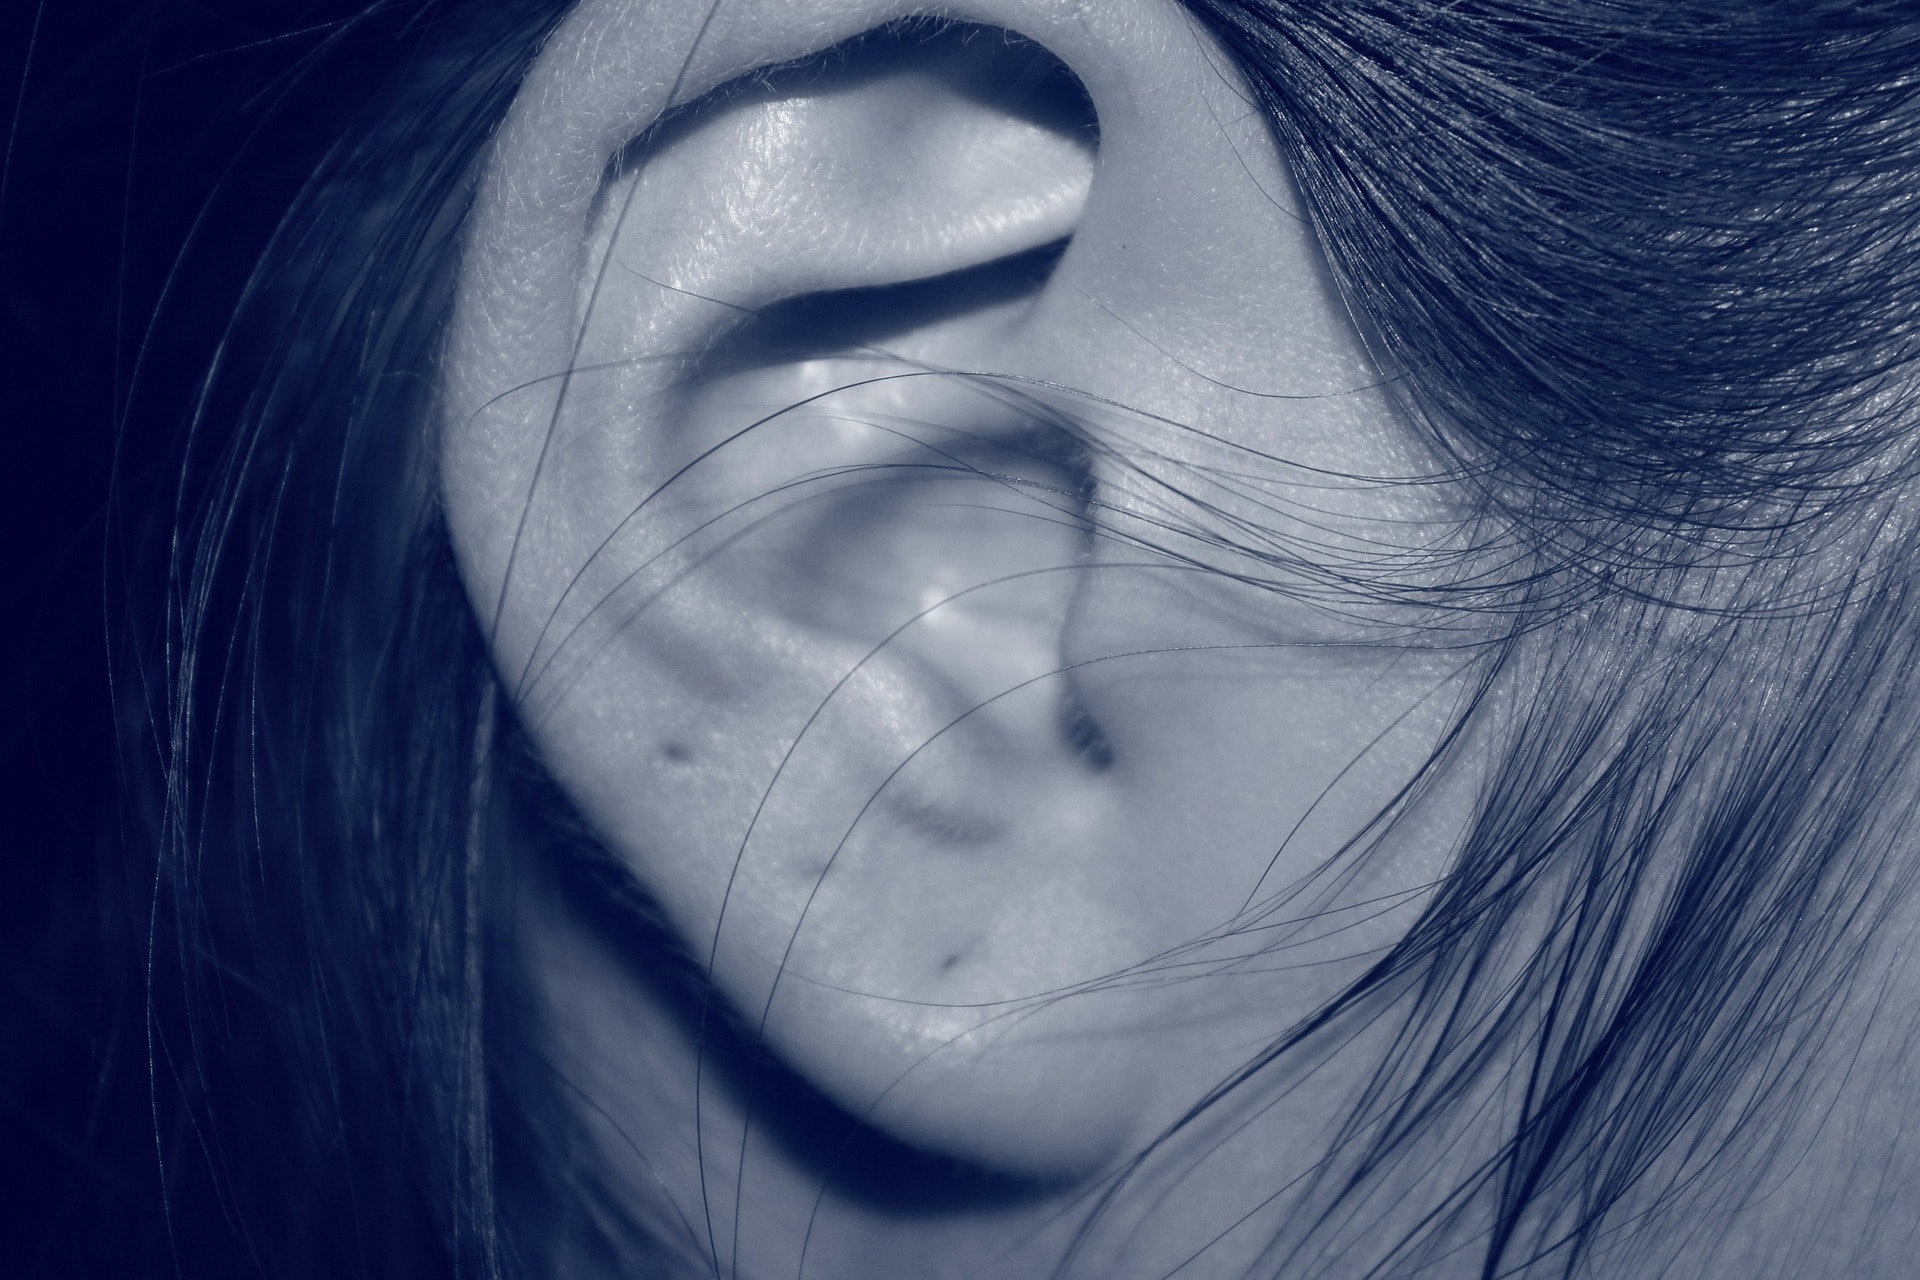 Can You Reopen A Closed Ear Piercing? There Are A Few